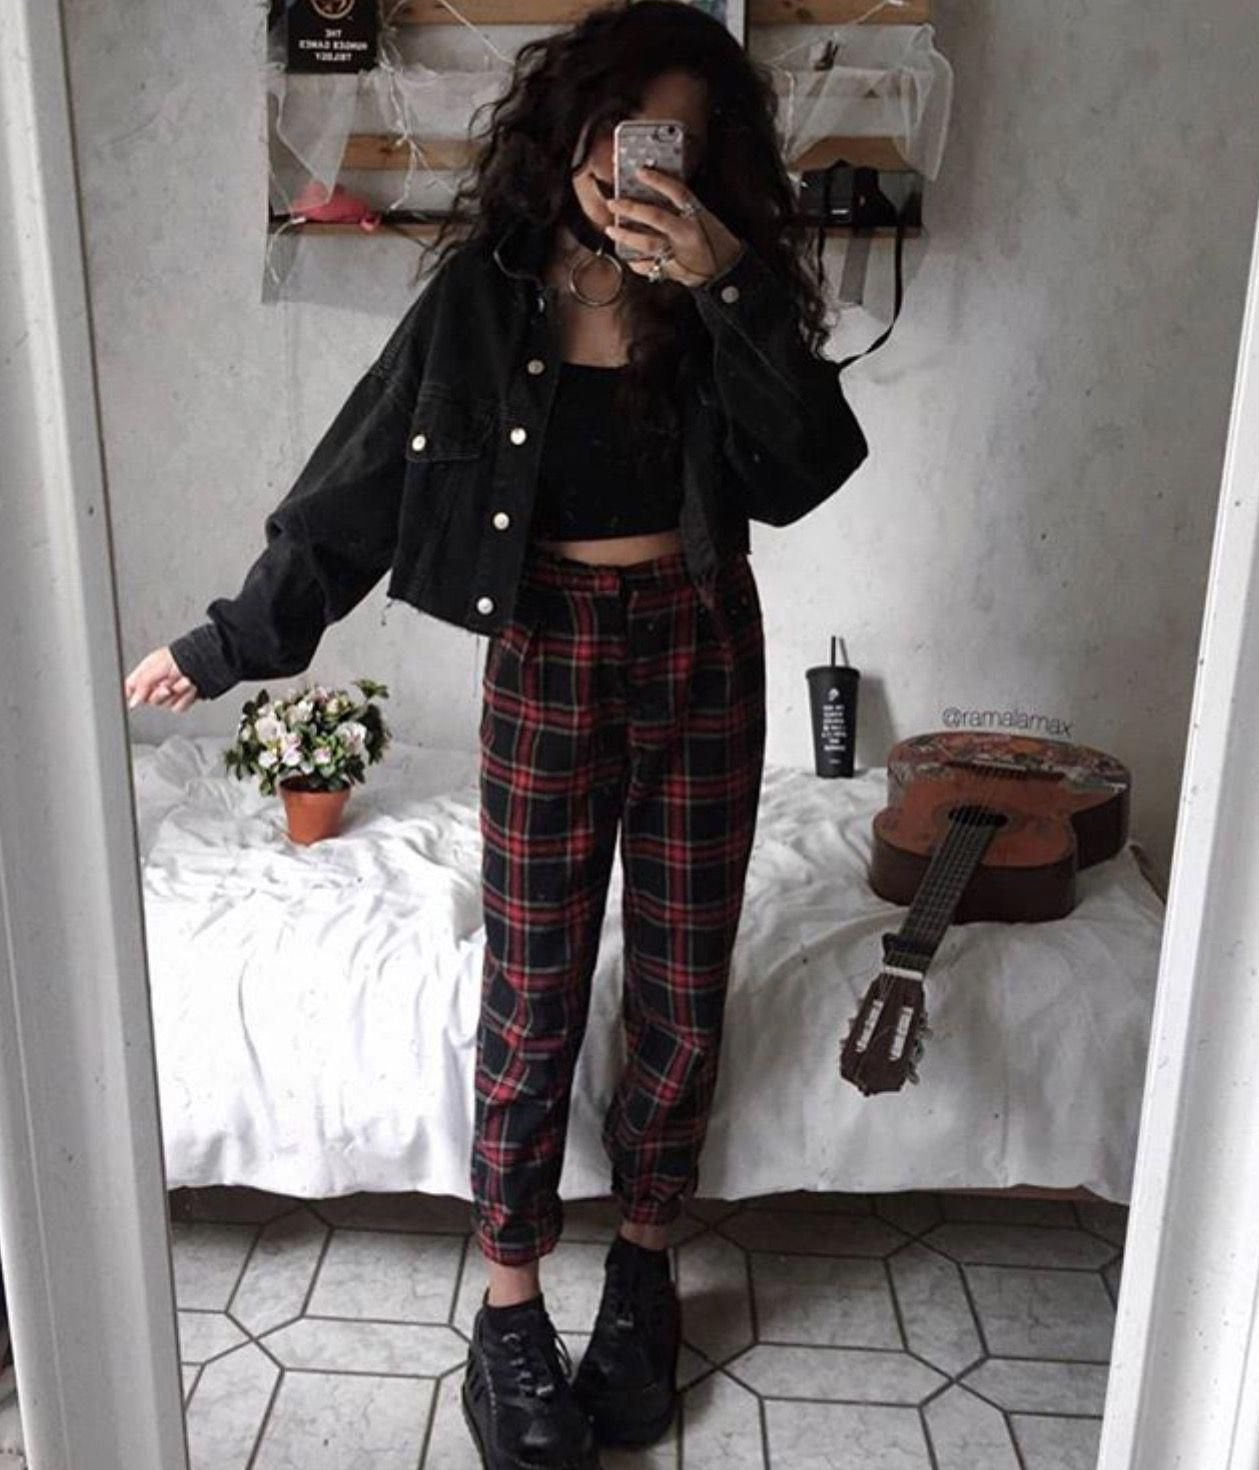 #grungeoutfitshipsters